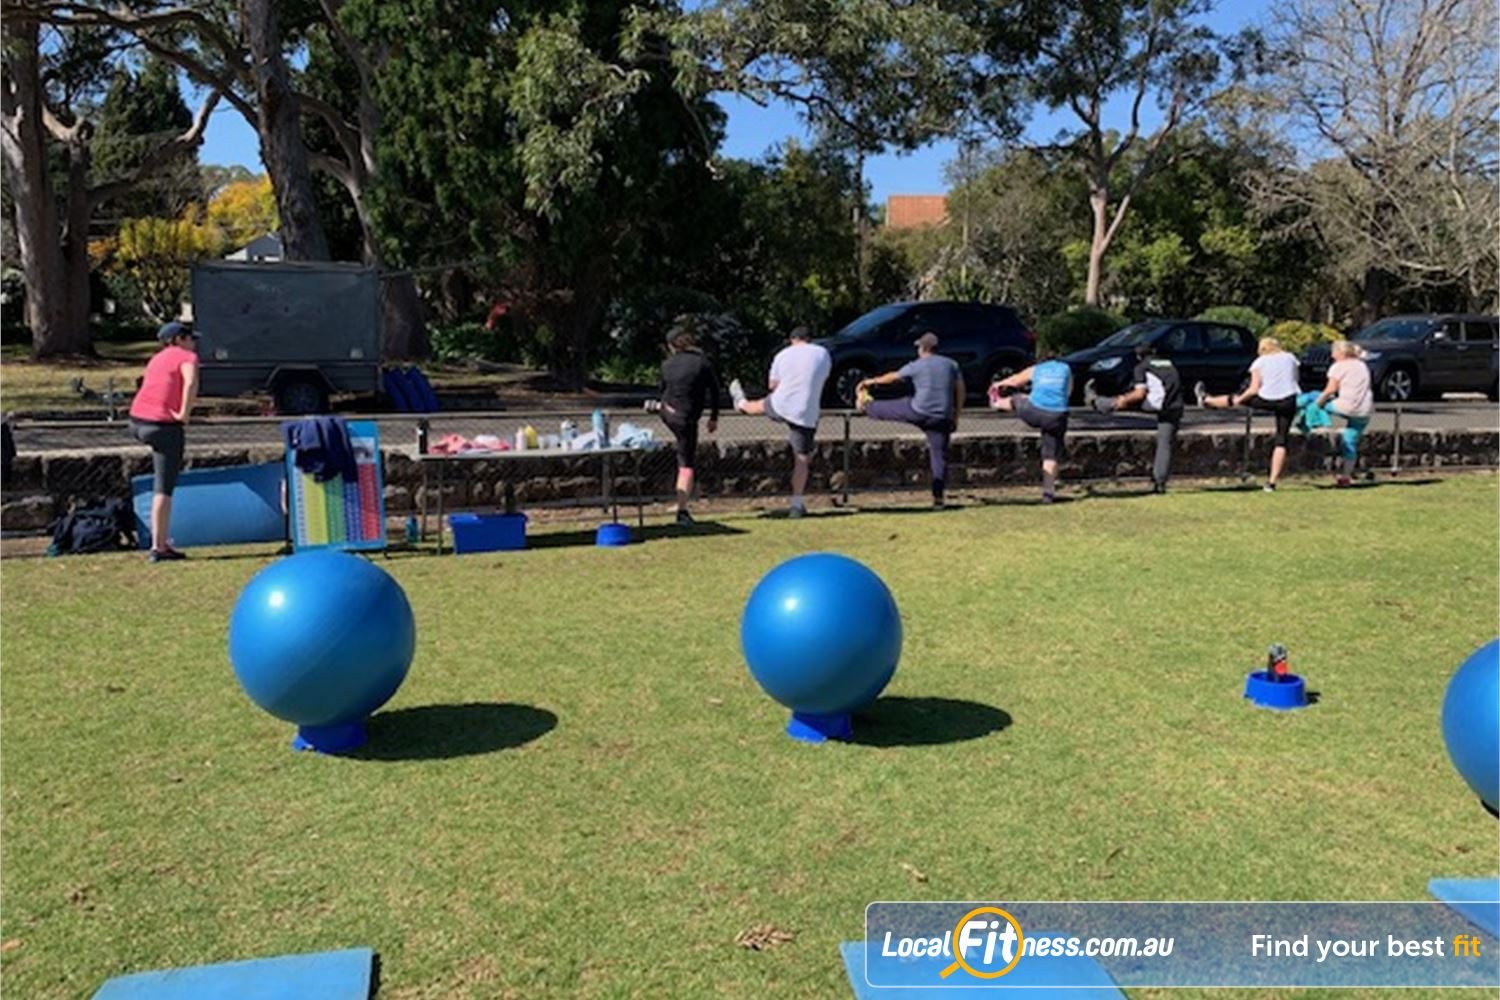 Refresh You Turramurra Our Outdoor fitness programs in Turramurra are customised to suit your goals.